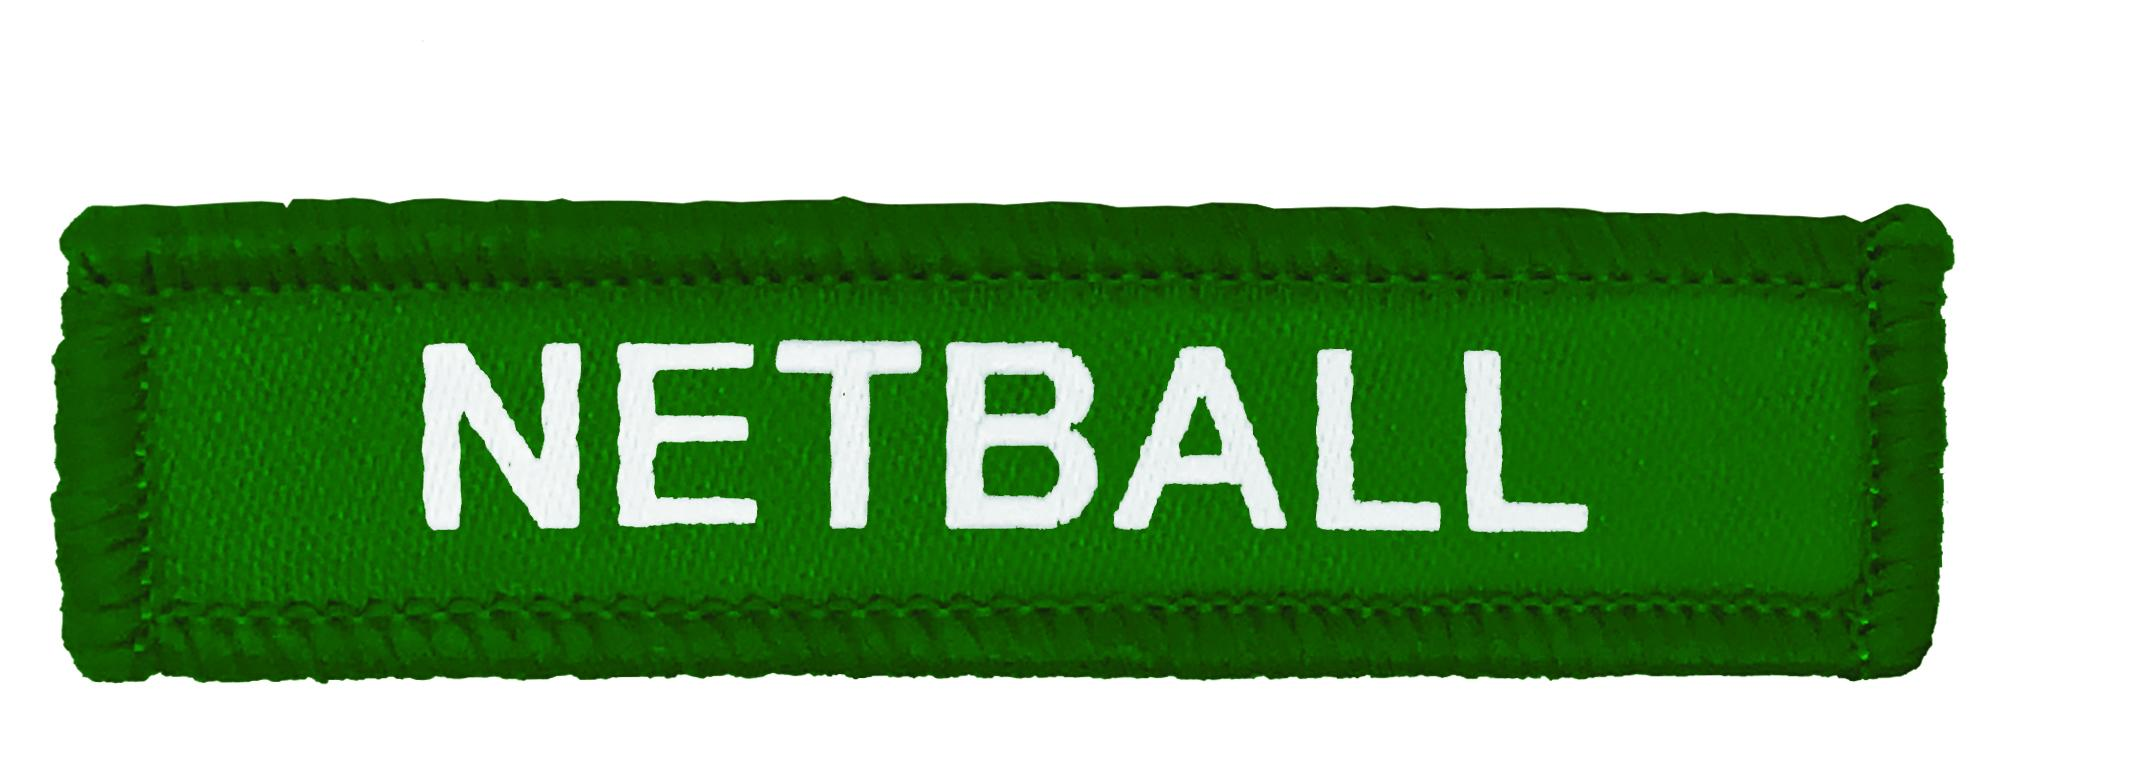 Green Woven Netball Badge